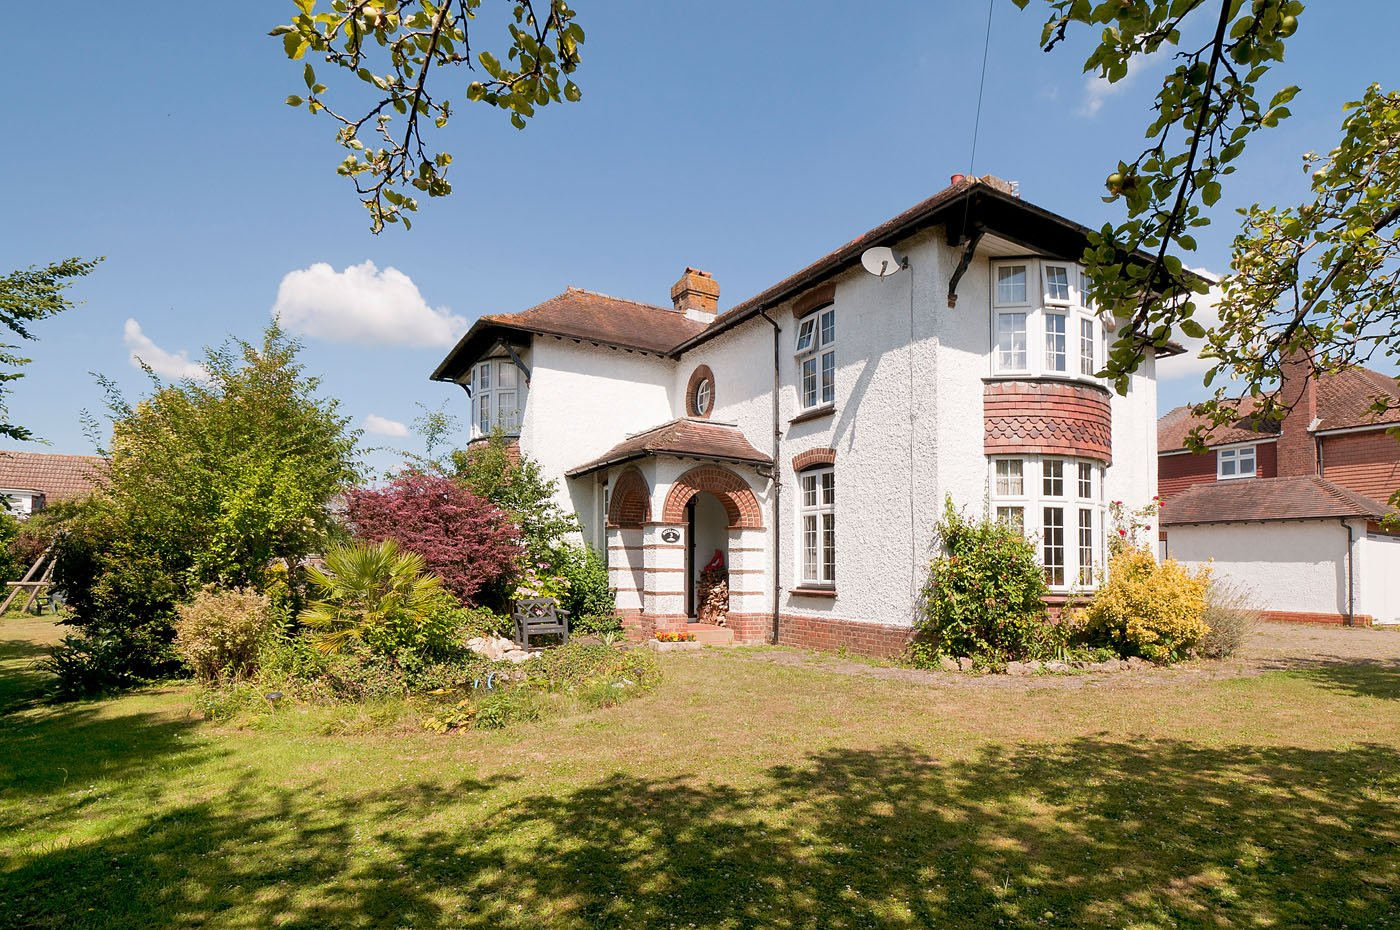 1930s white detached period home in countryside with bay windows